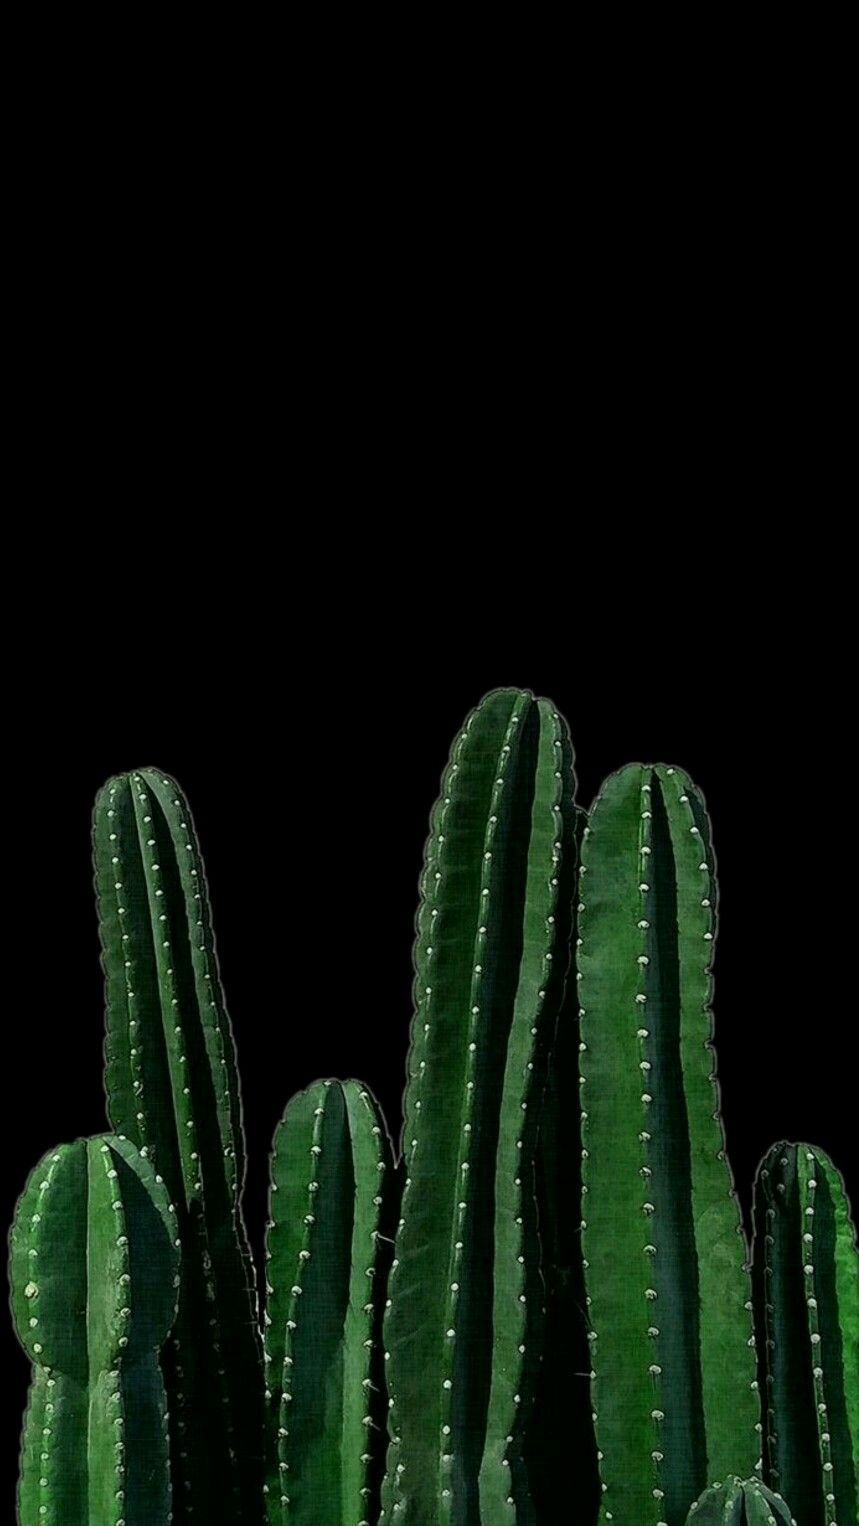 Black Cactus Wallpapers Top Free Black Cactus Backgrounds Wallpaperaccess